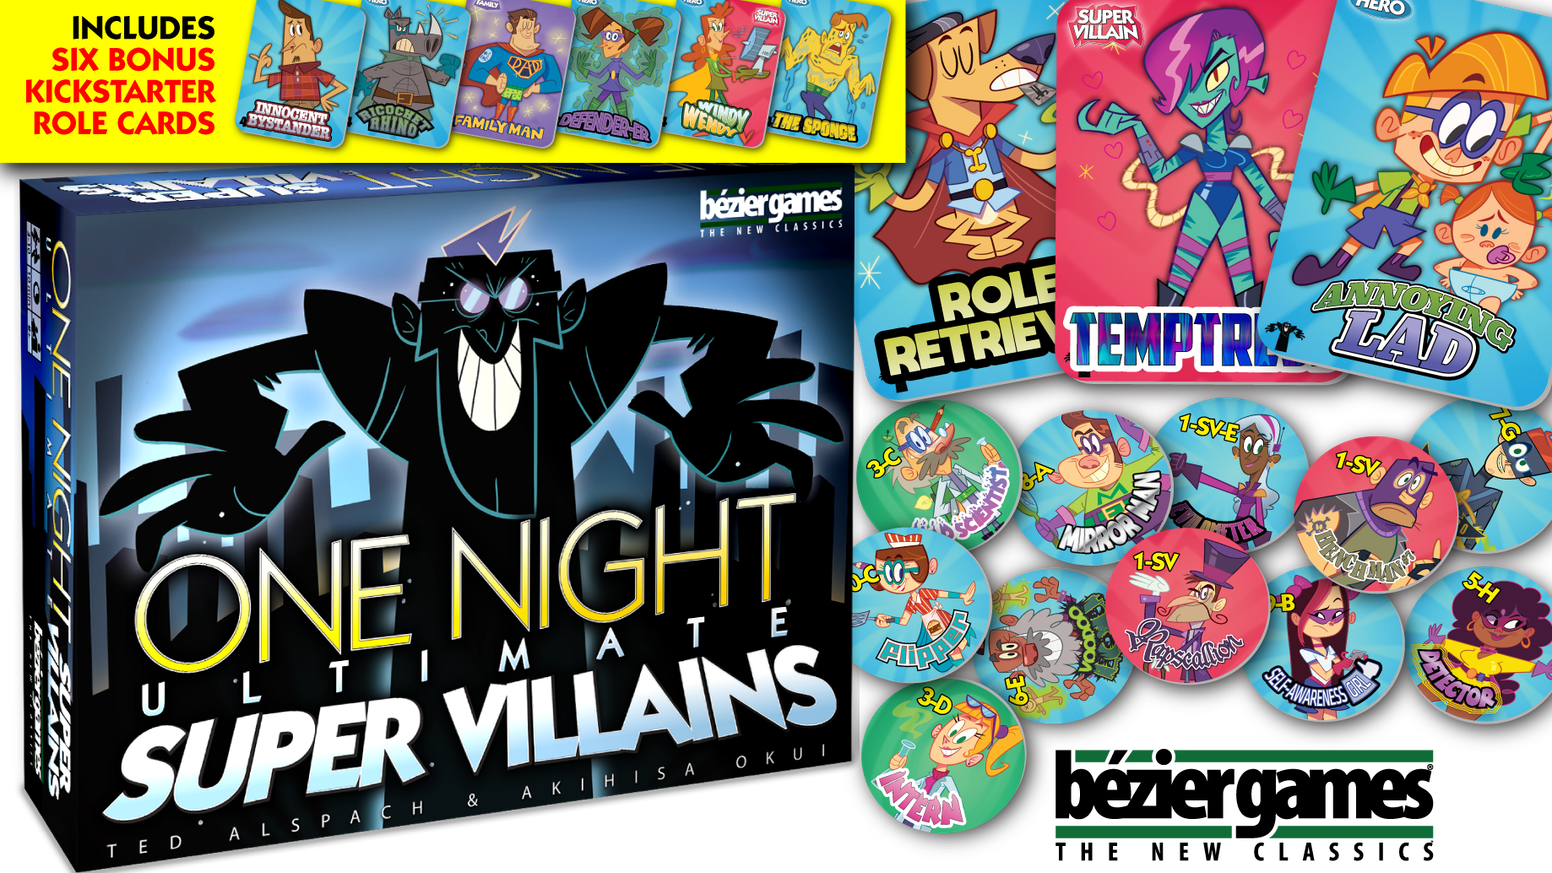 In this follow-up to One Night Ultimate Werewolf, players take on the roles of heroes or villains, each with amazing superpowers!